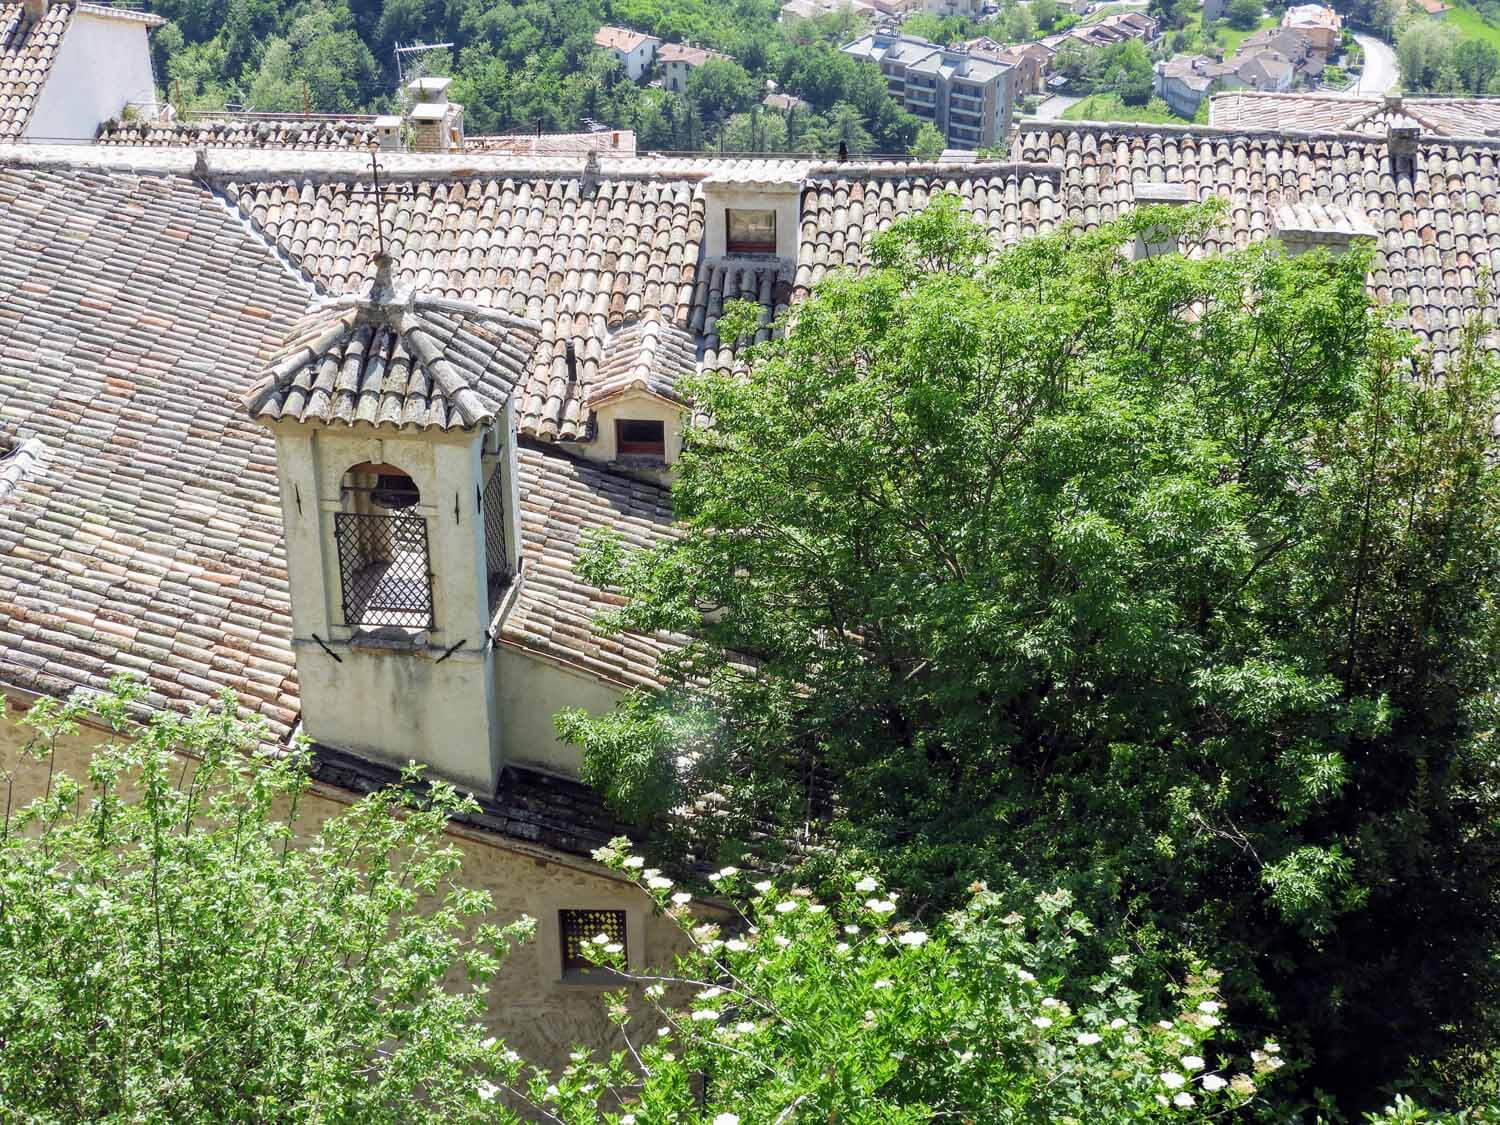 san-marino-micro-nation-roof-clay-tiles-bell.jpg